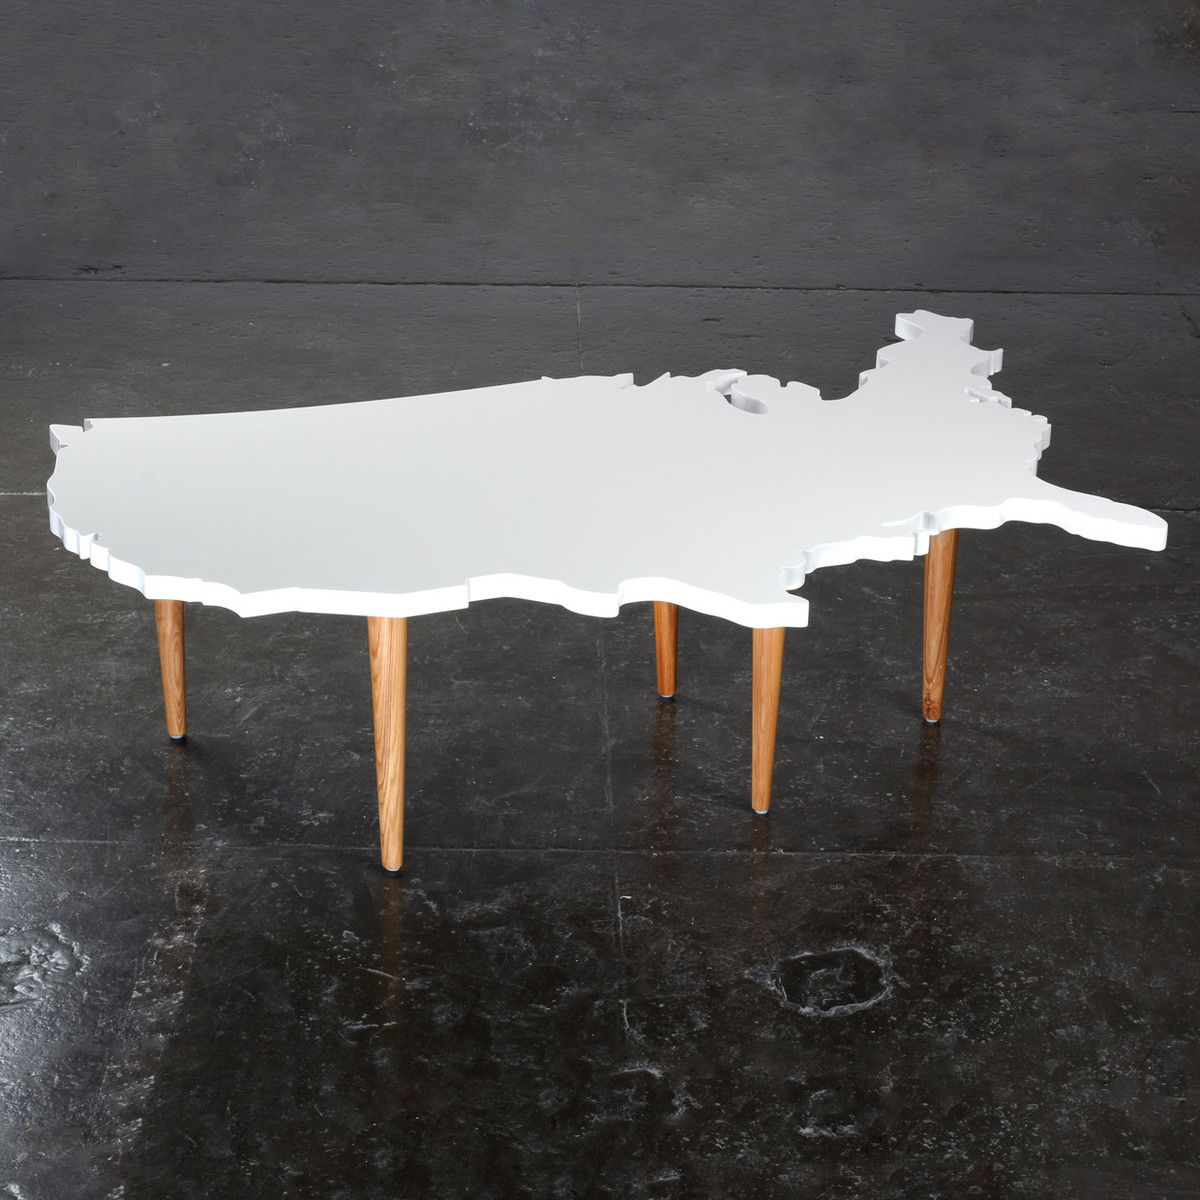 Modern Coffee Tables Usa: USA Coffee Table - Now That Is Patriotic!